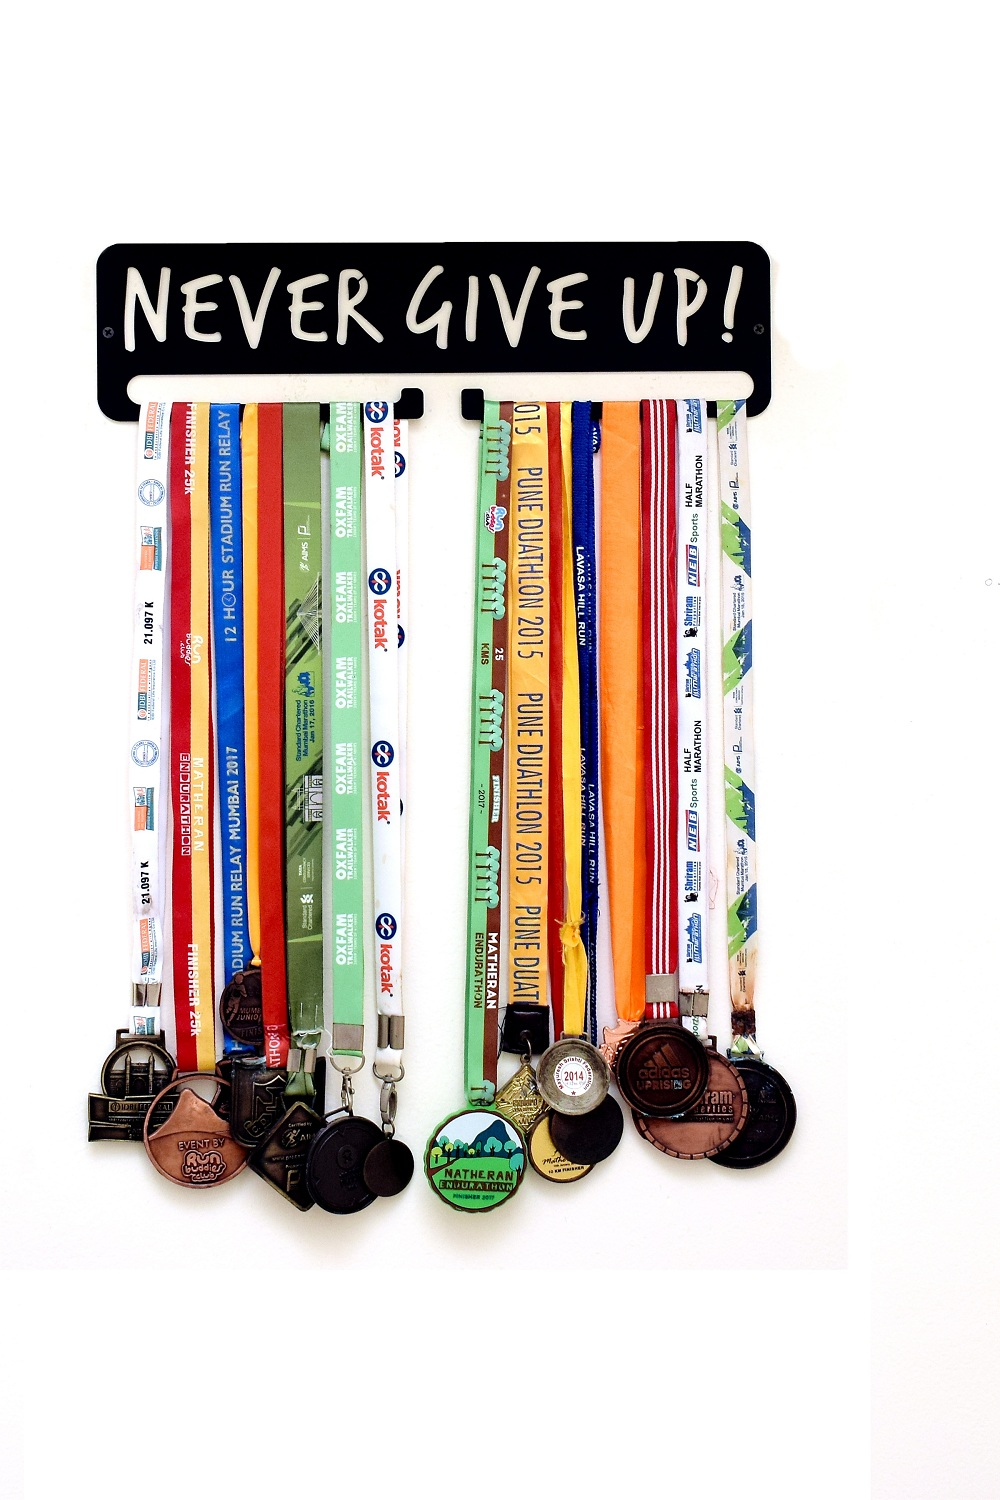 Never Give Up 18 (1)